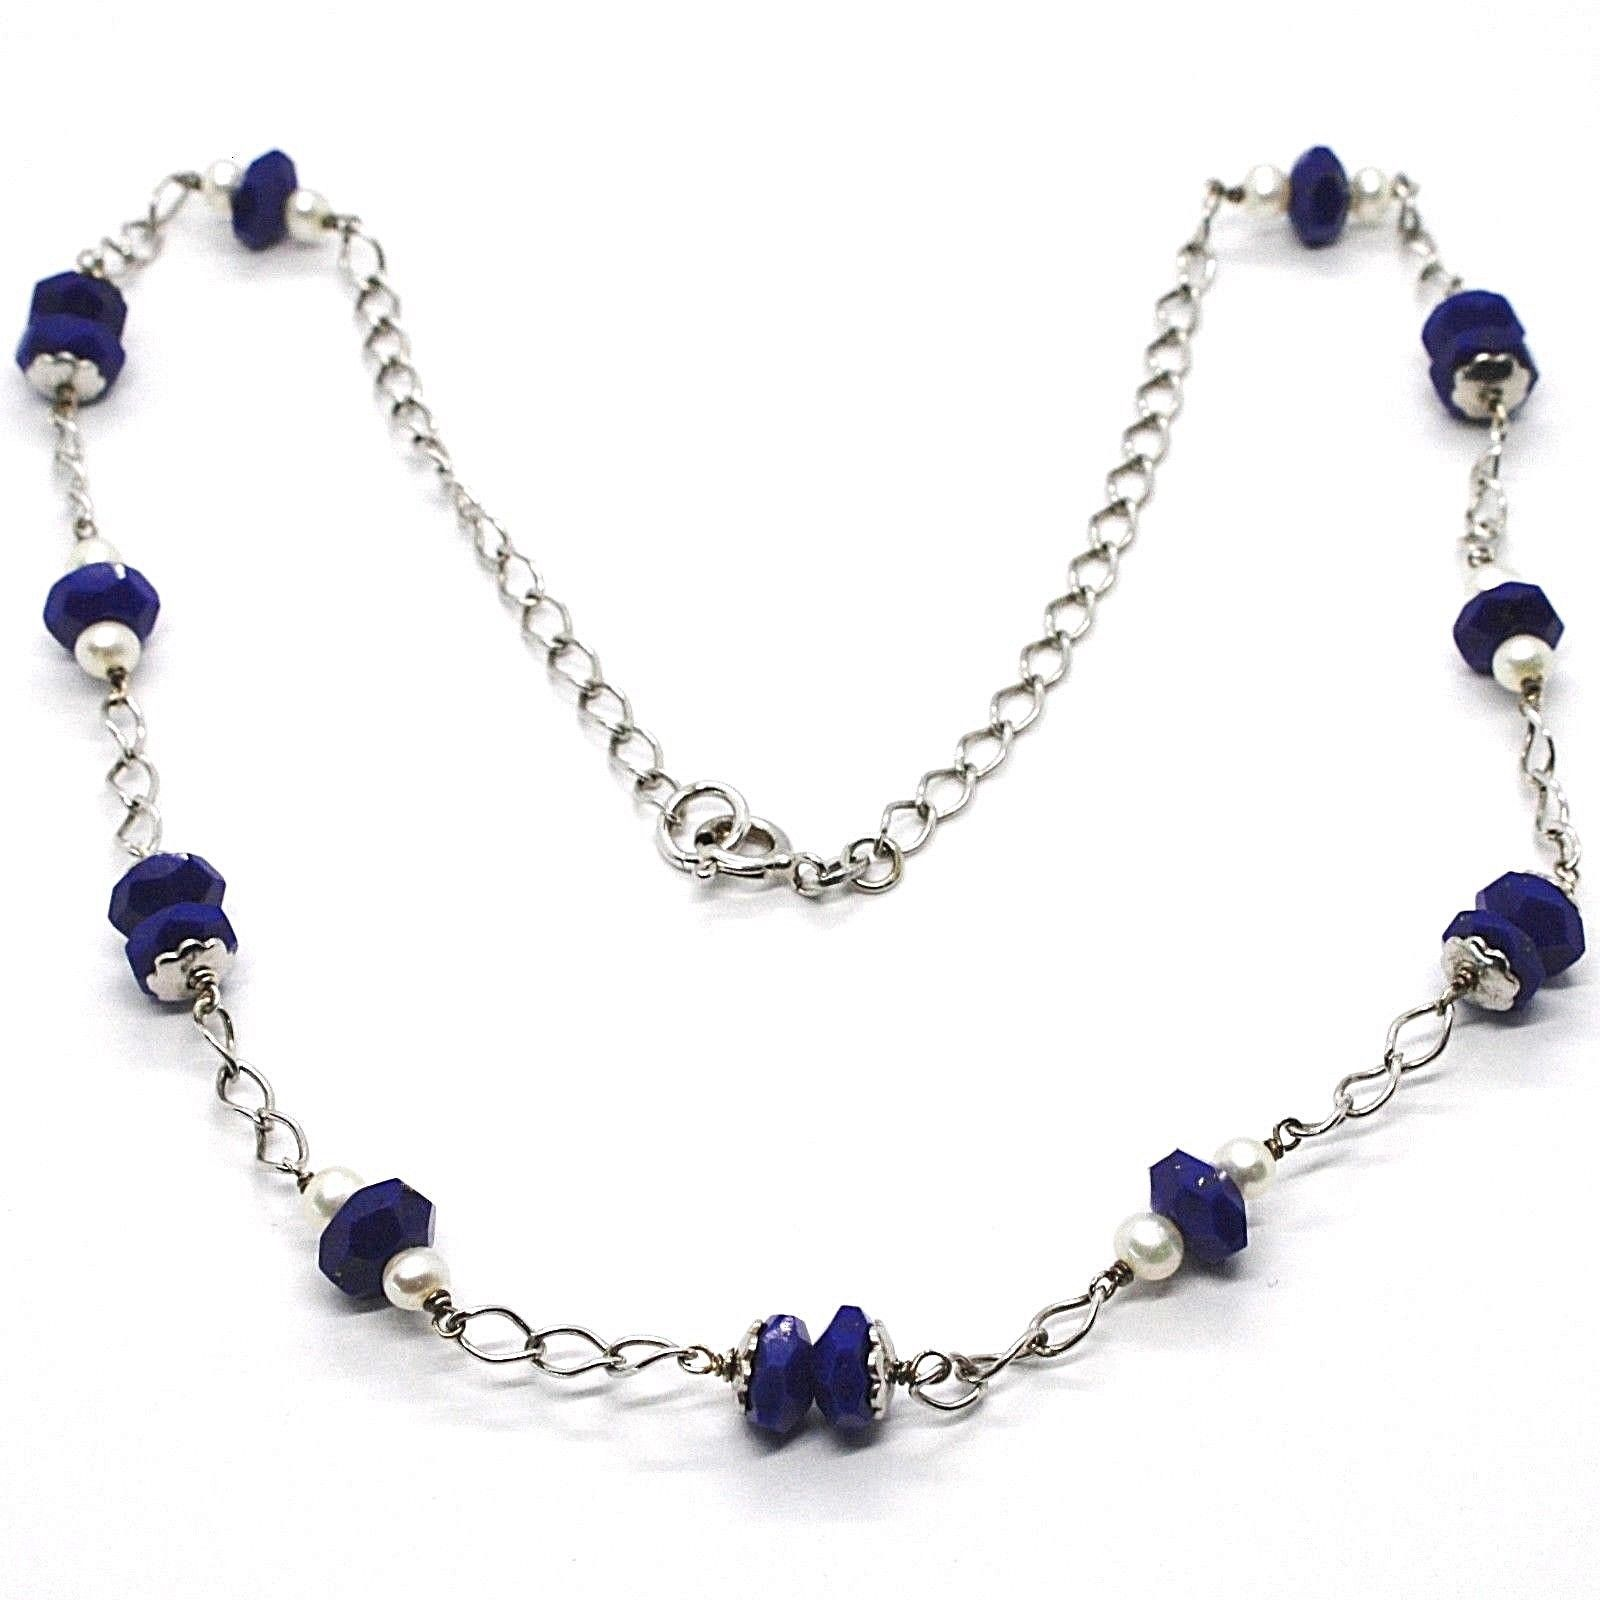 SILVER 925 NECKLACE, LAPIS LAZULI BLUE DISCO FACETED, PEARLS, 45 CM